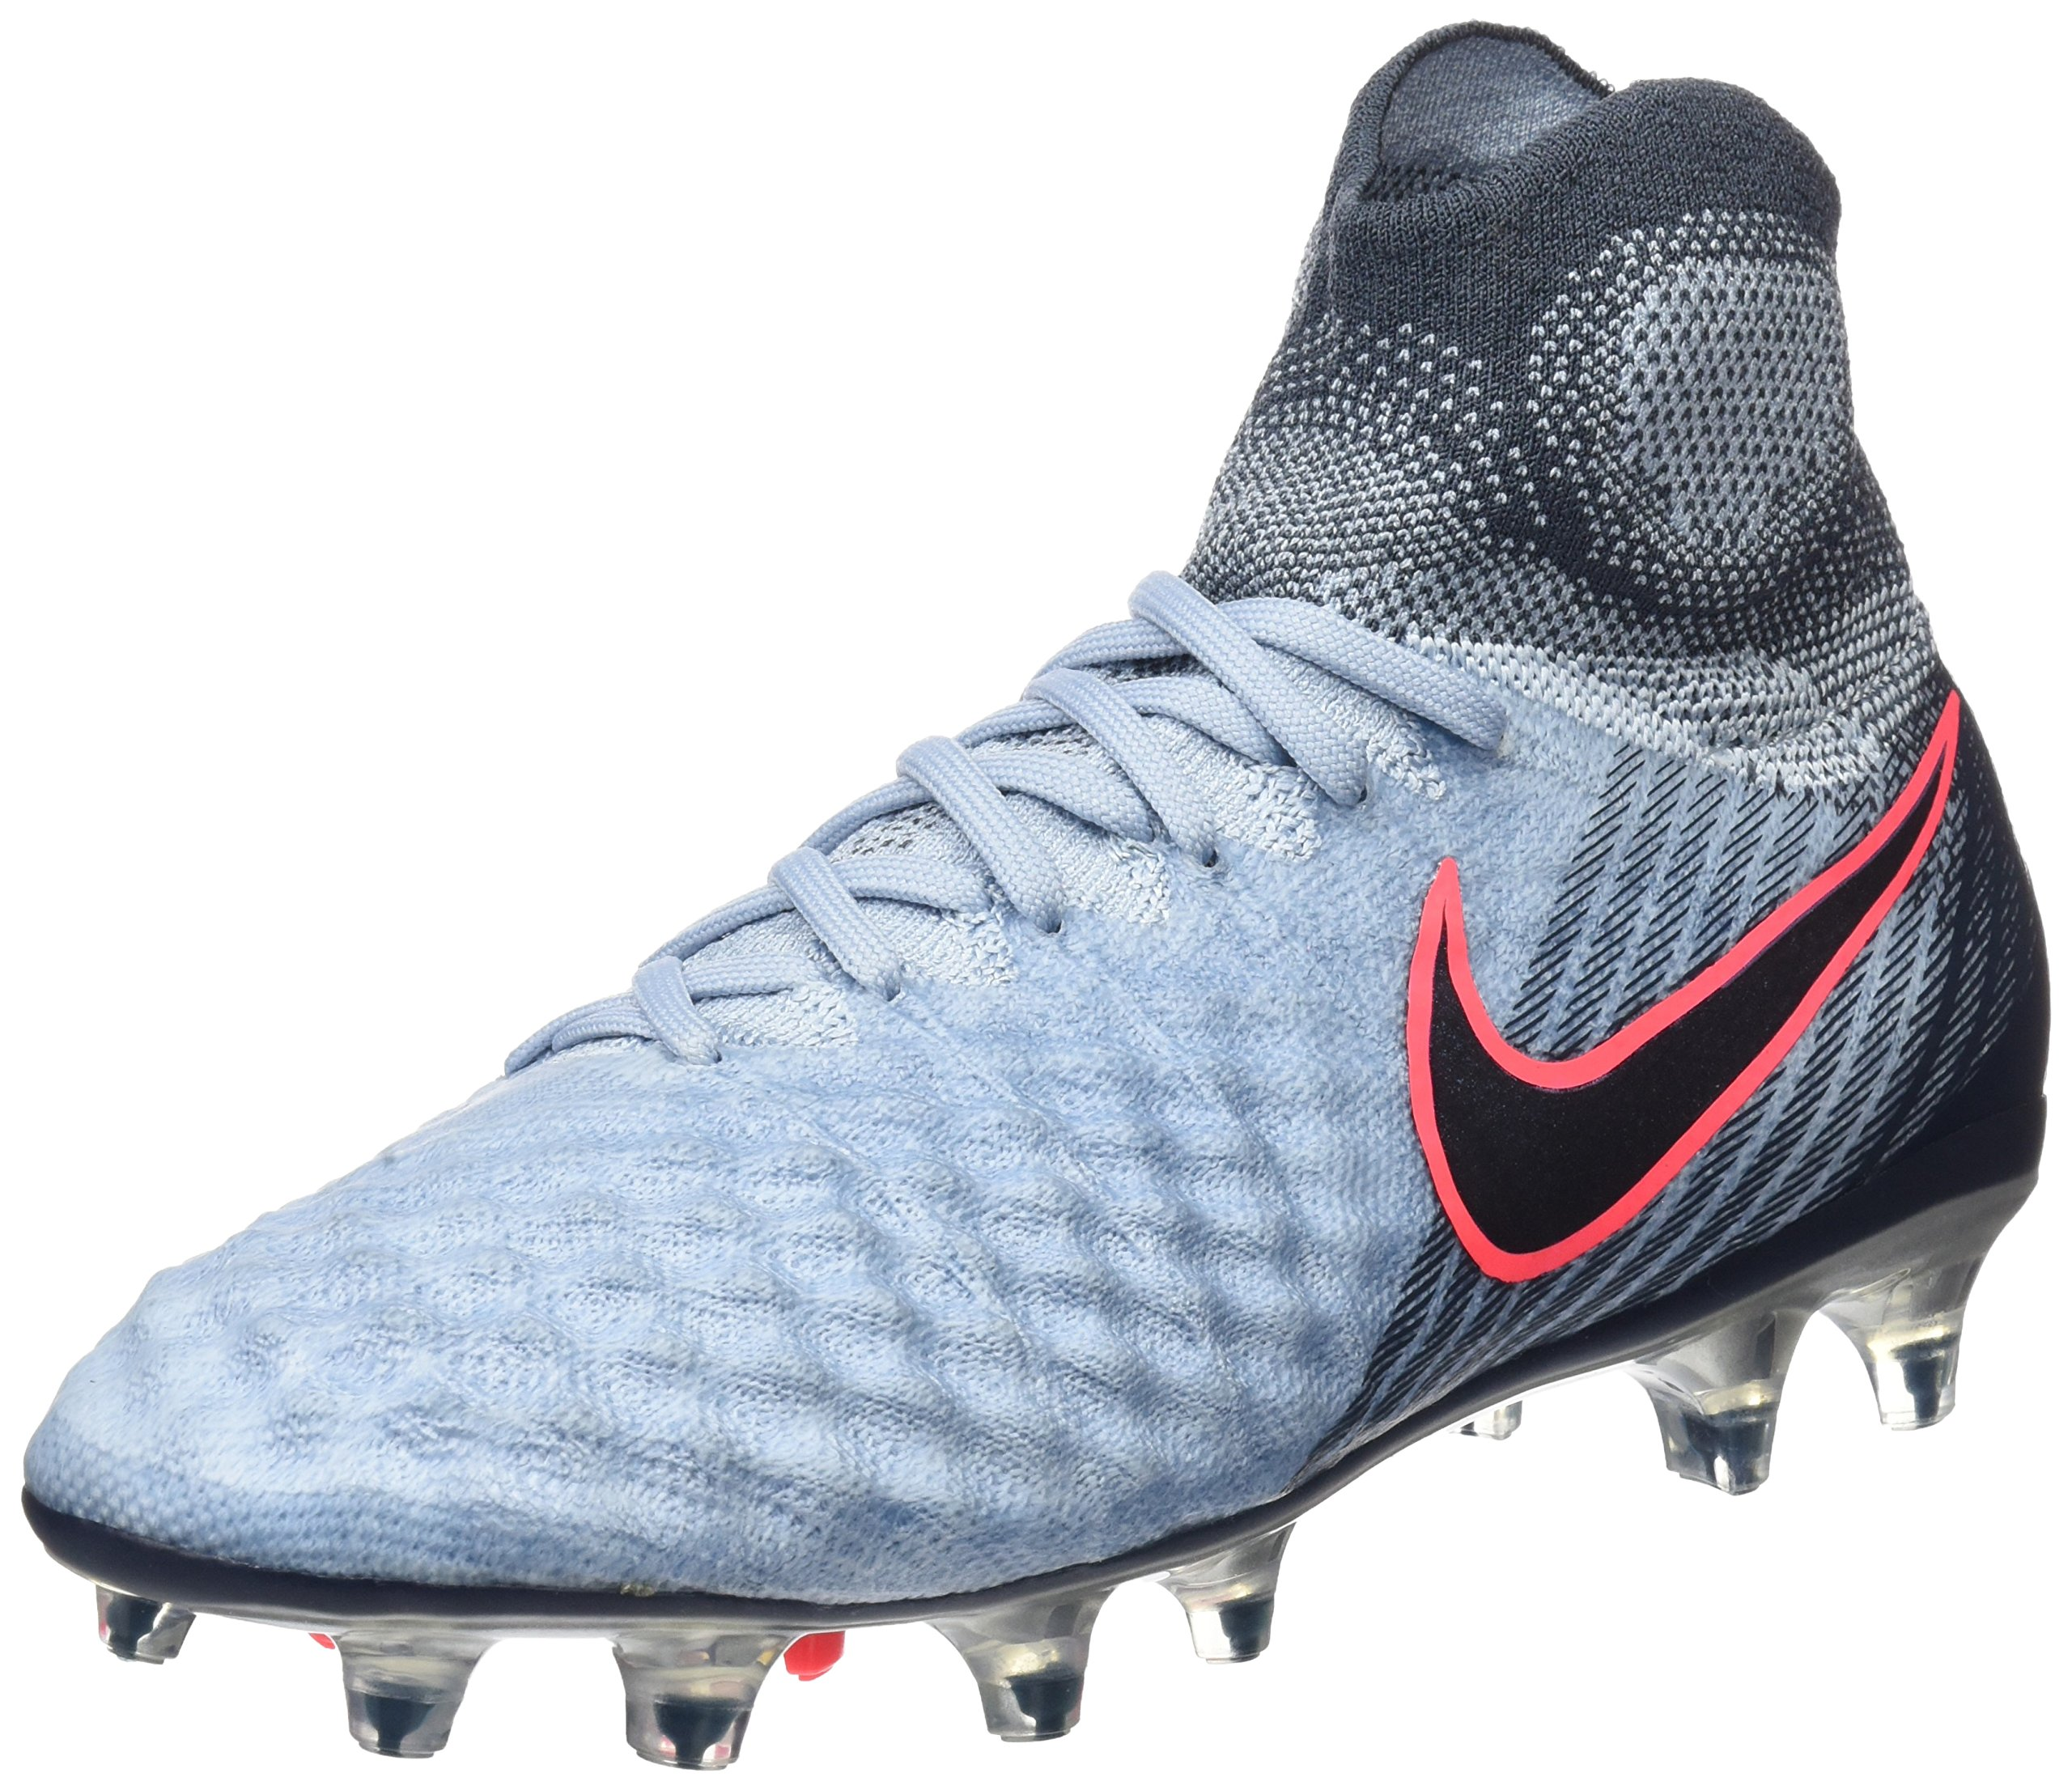 Nike Junior Magista Obra II FG Older Kids' Soccer Cleats (Armory Blue/Navy) (5.5 Big Kid M)